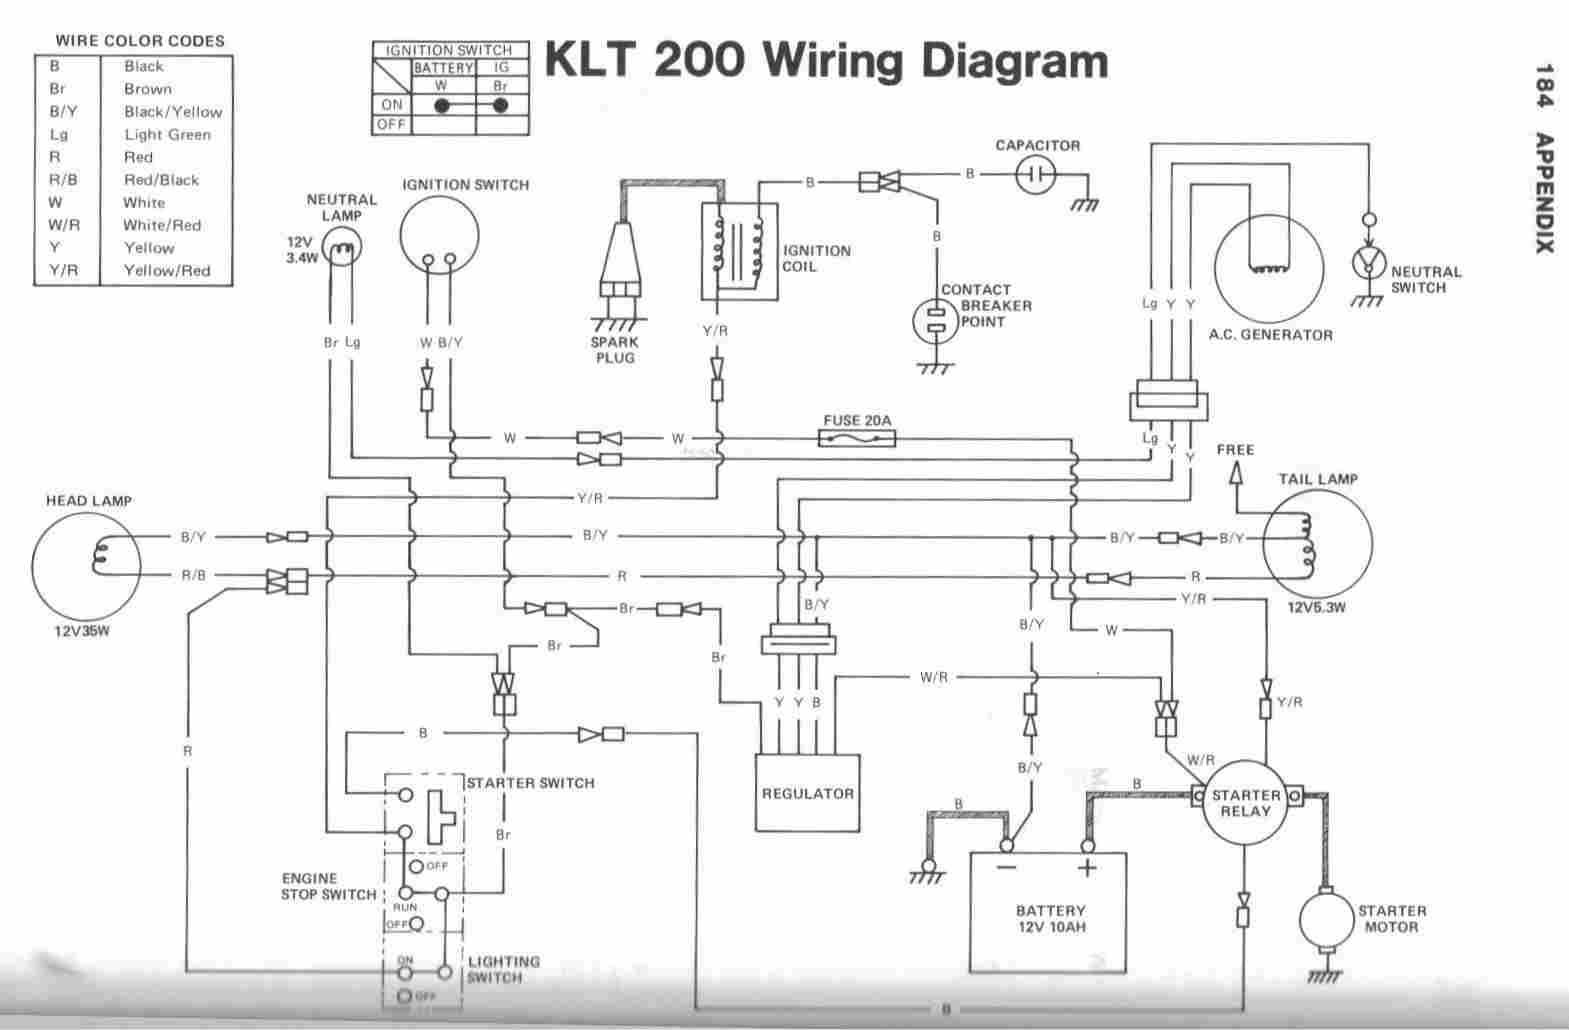 boeing wiring diagrams